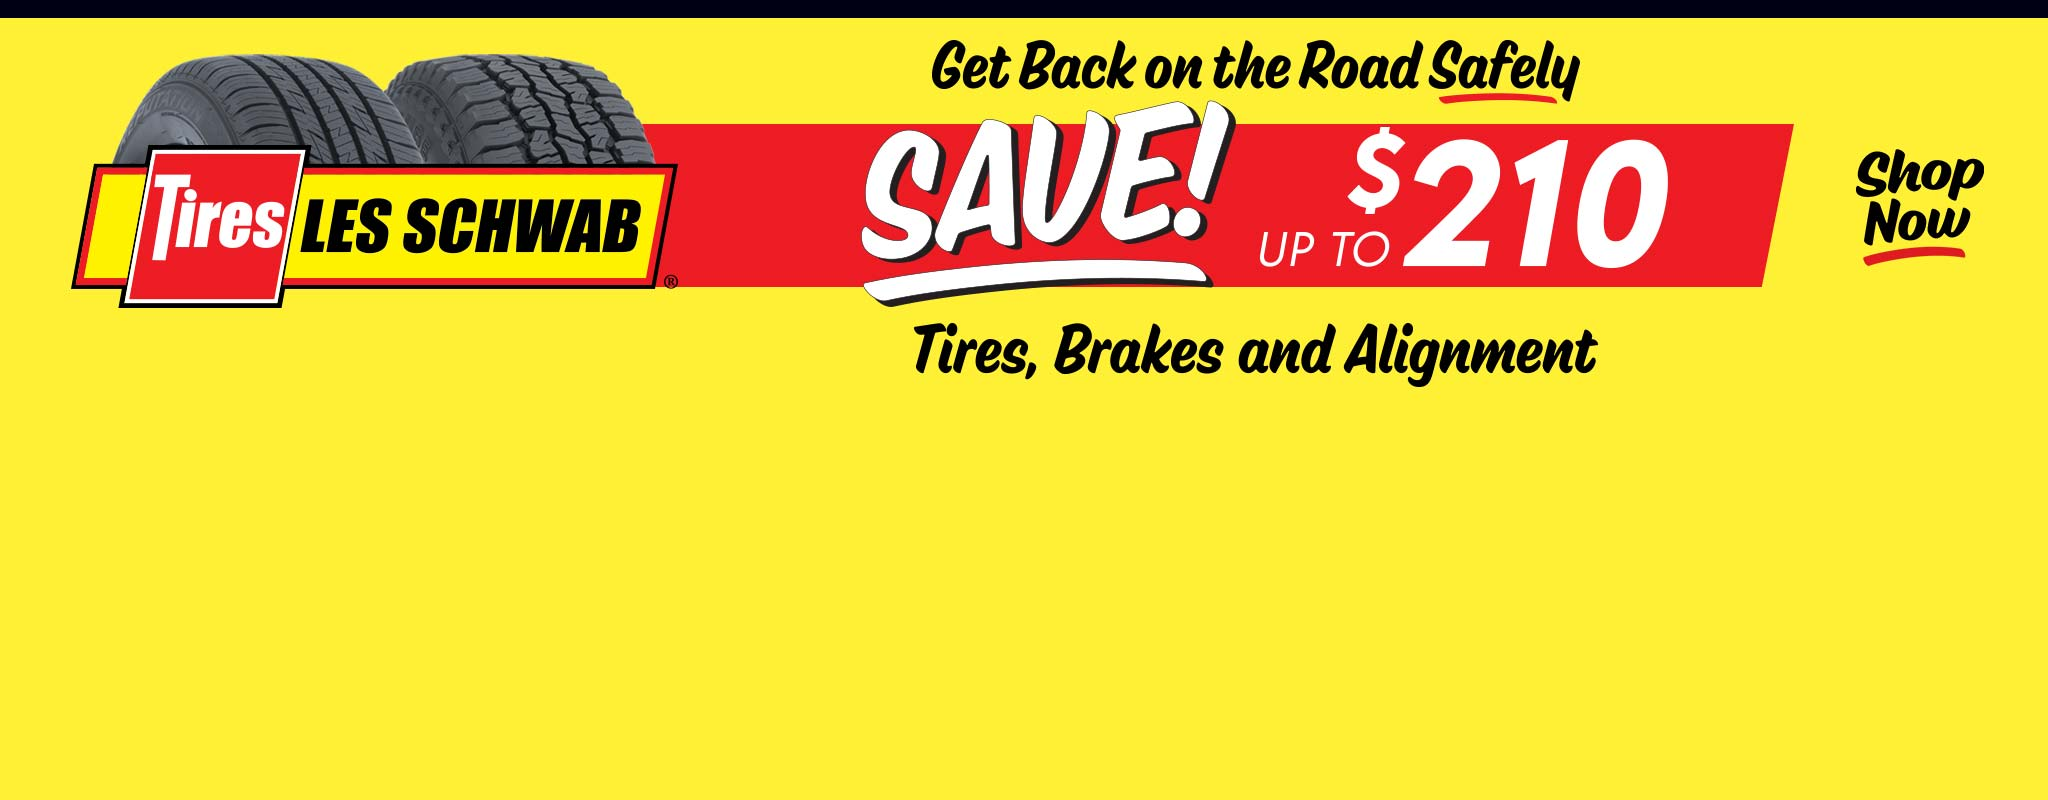 Two tires over a red and yellow background